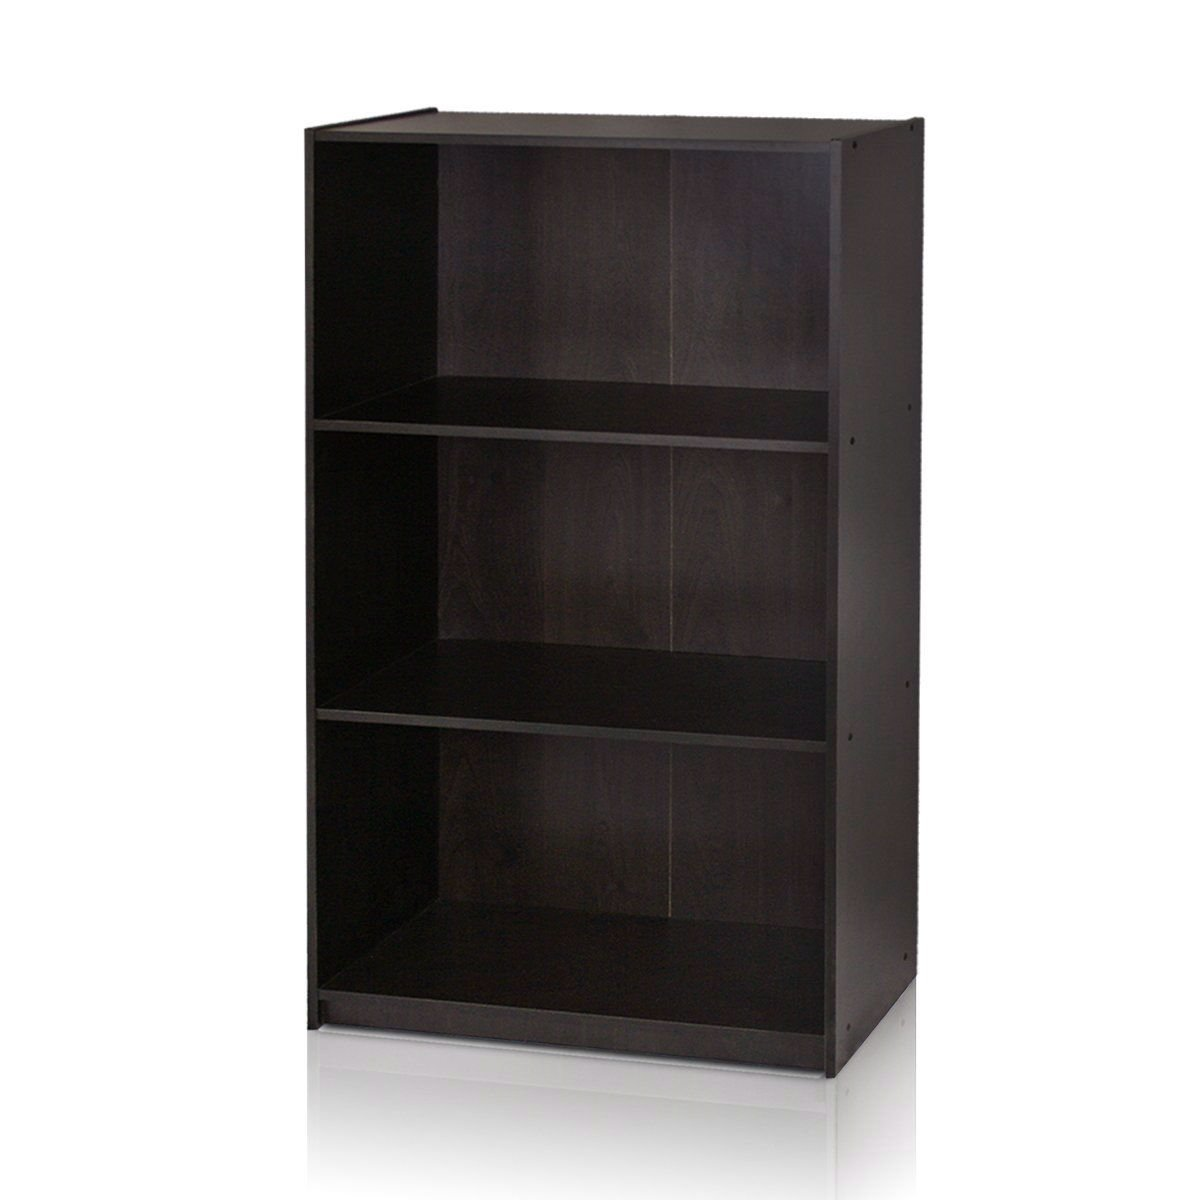 Modern 3-Shelf Bookcase in Espresso Wood Finish